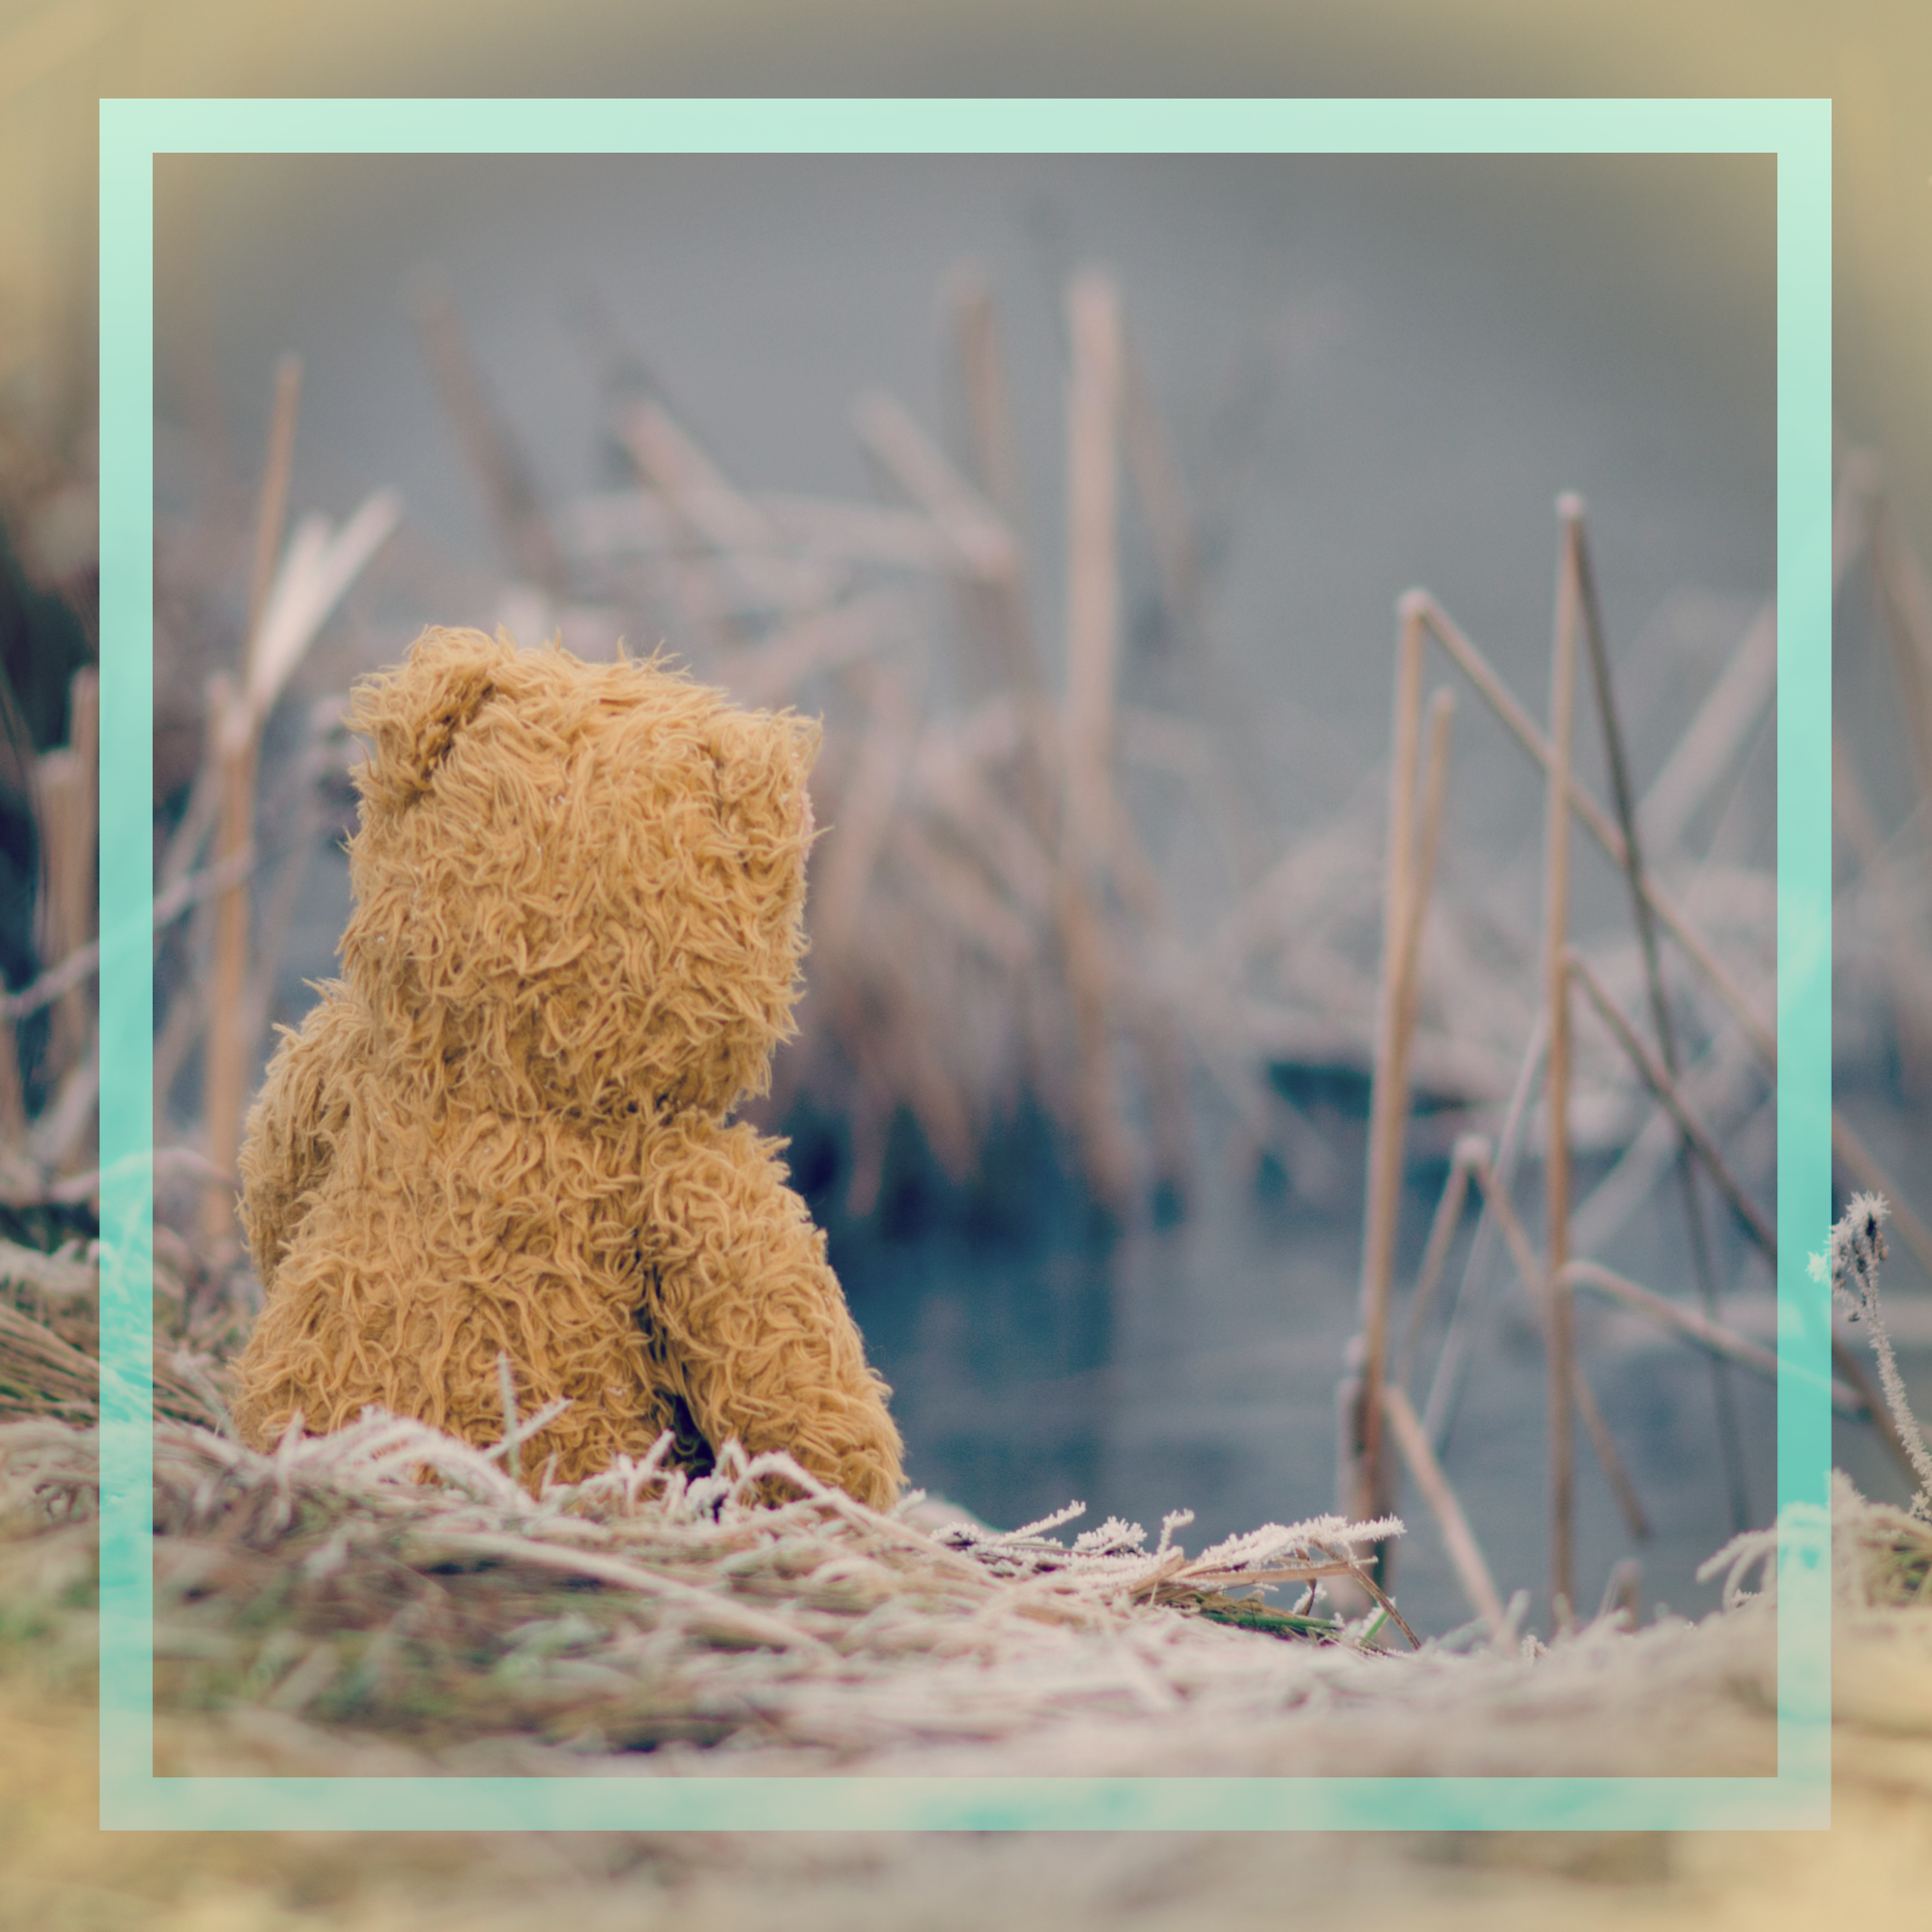 a square image with a light teal border of a beige teddy bear with its back to us sitting along a still pool of grey water surrounded by dried winter or fall like stalks of grass. The background or scene is a slight dark grey